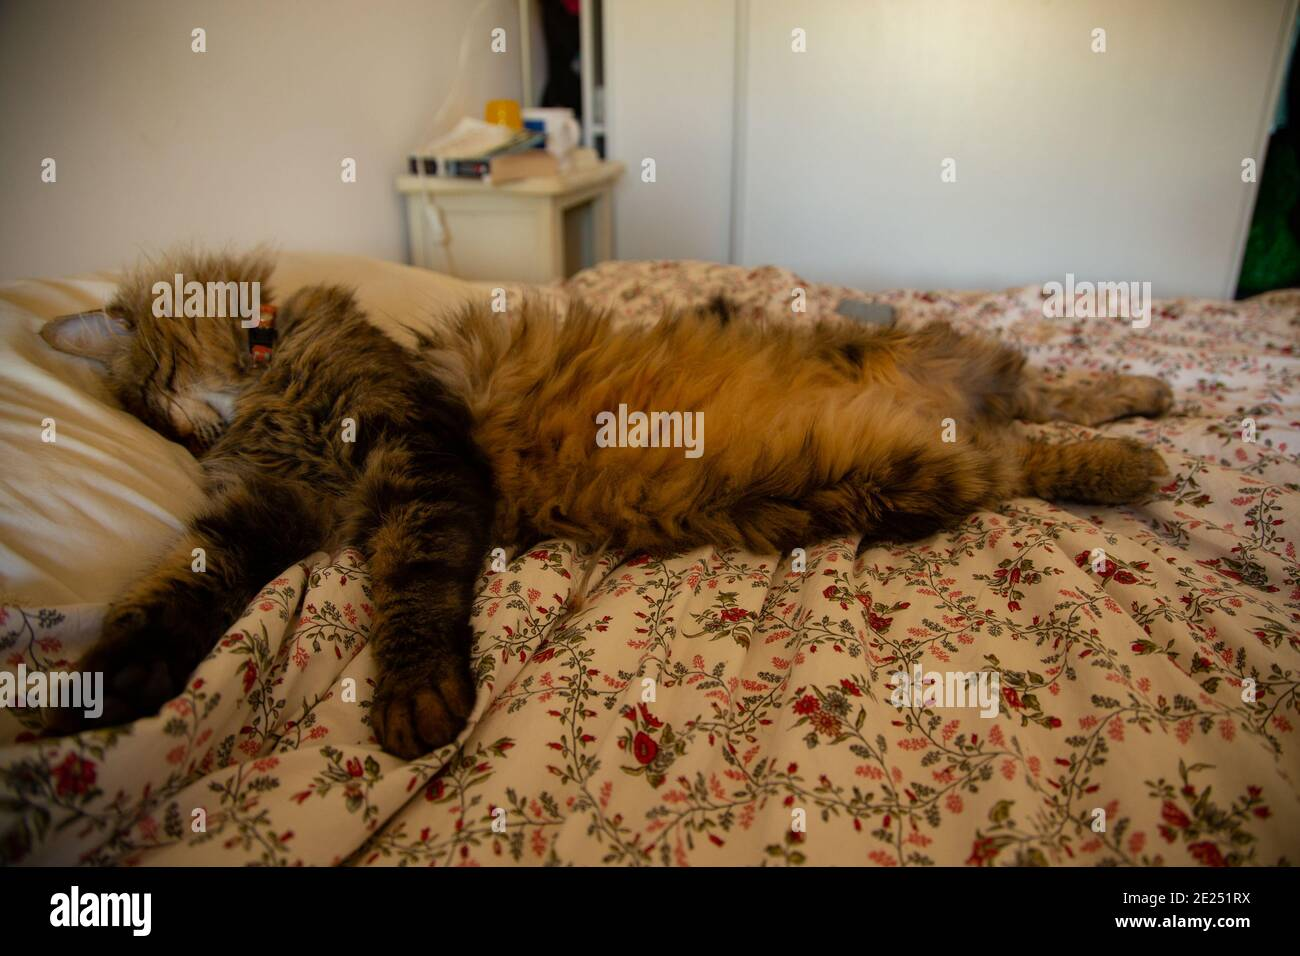 Cat sleeping in an awkward position. Stock Photo